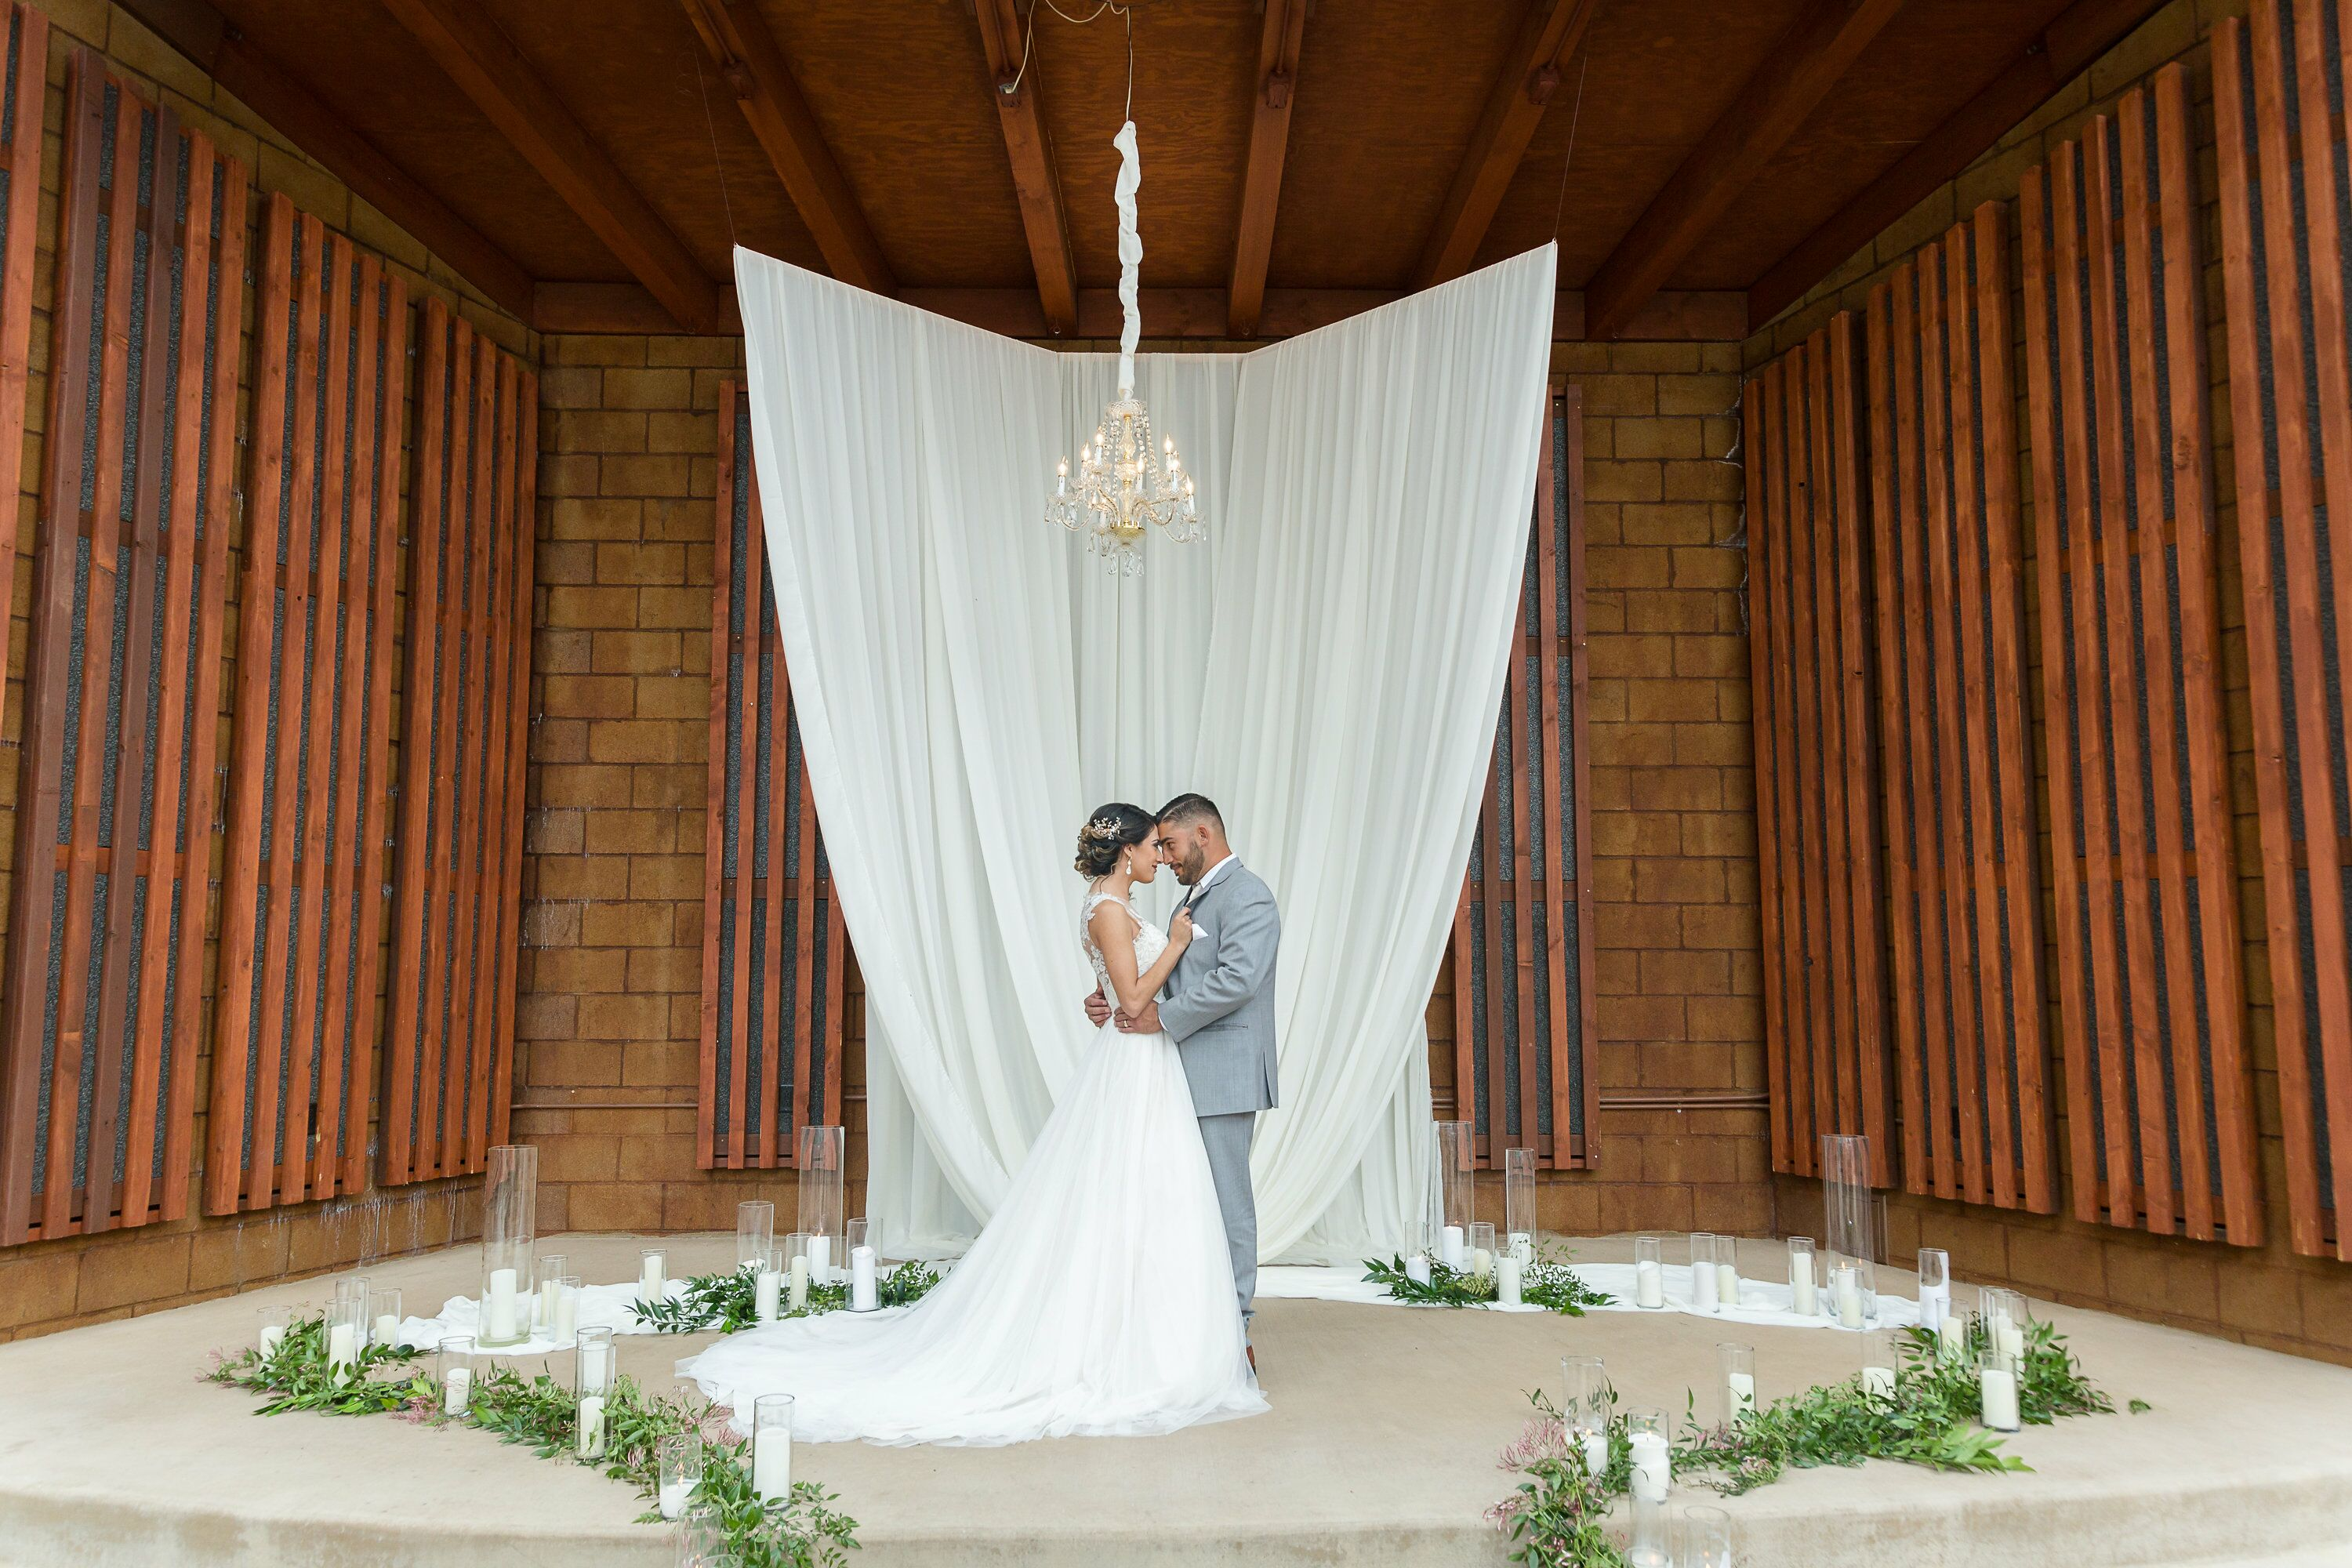 The Grand Highland Hotel Wedding Venues Reception Venues The Knot